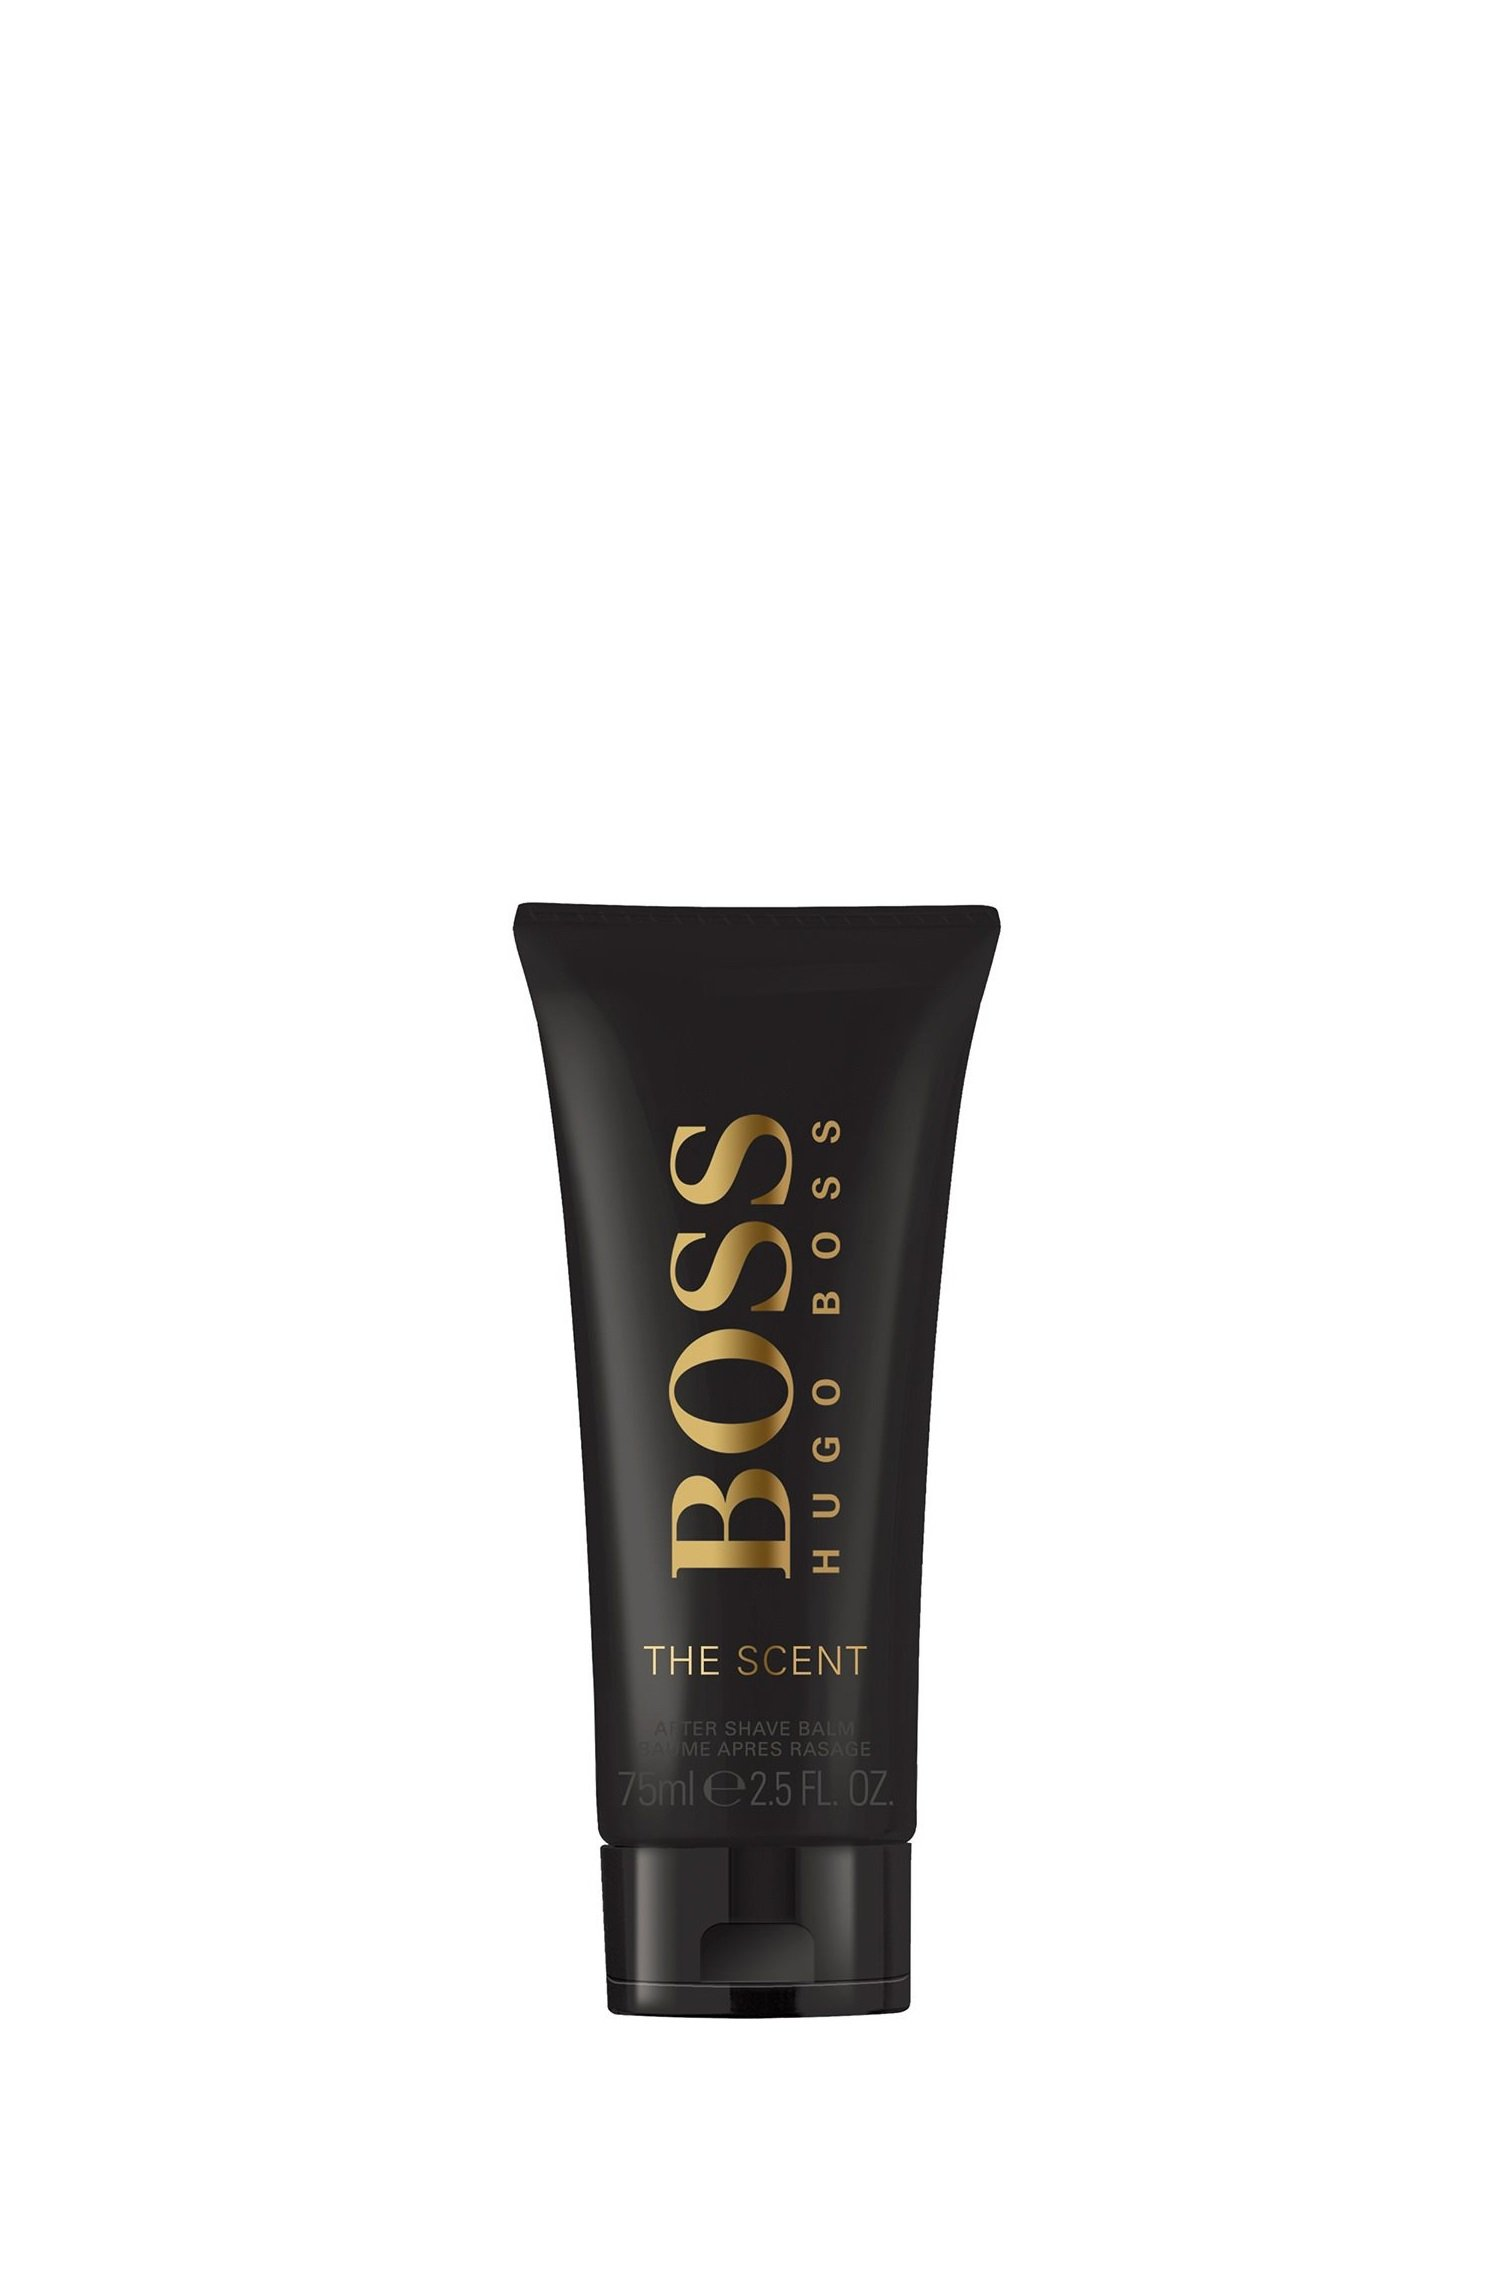 BOSS The Scent aftershavebalsam 75ml, Assorted-Pre-Pack